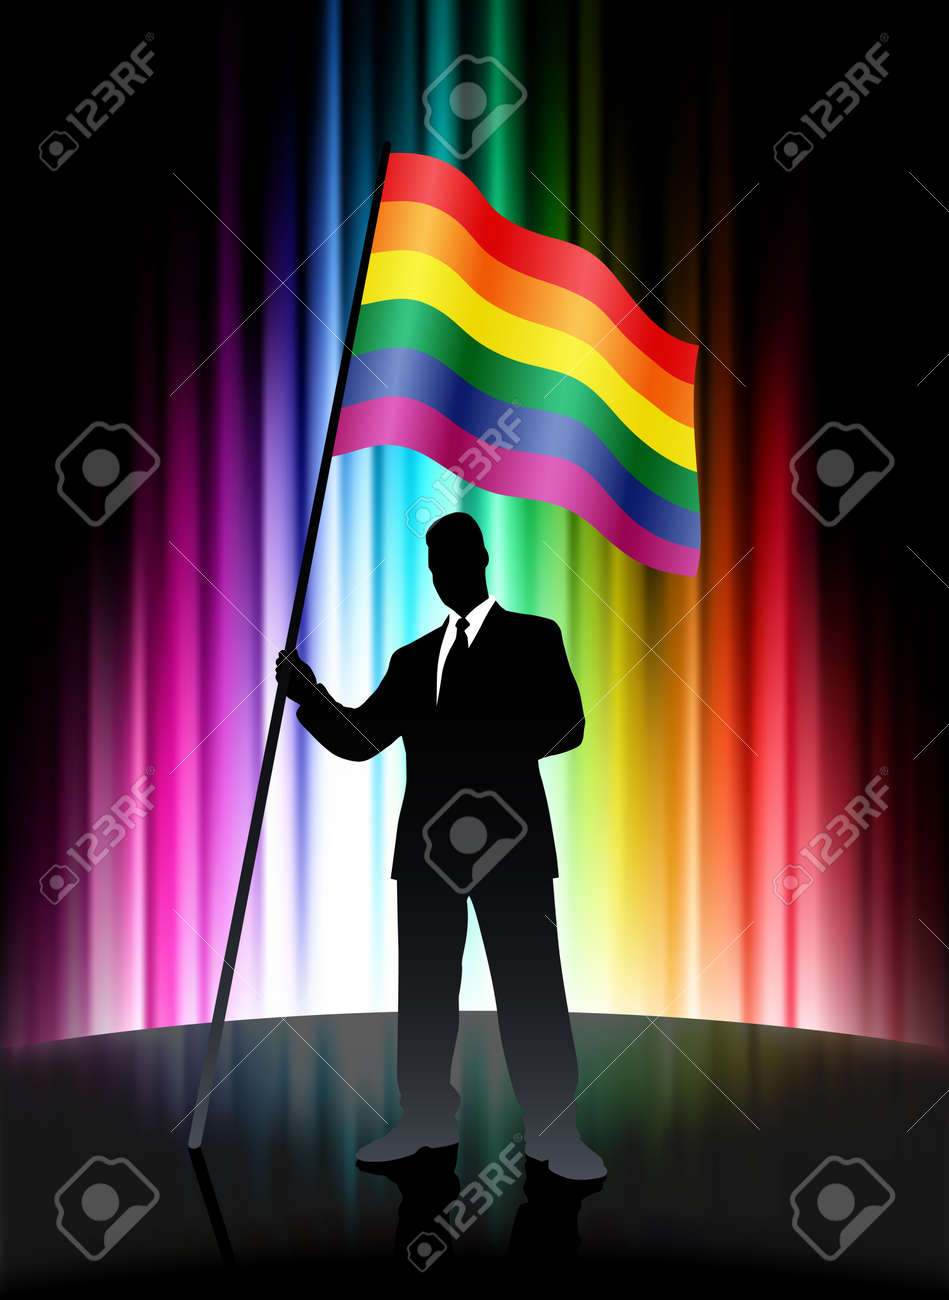 Flag with Businessman on Abstract Spectrum Background Original Illustration Stock Illustration - 7569201